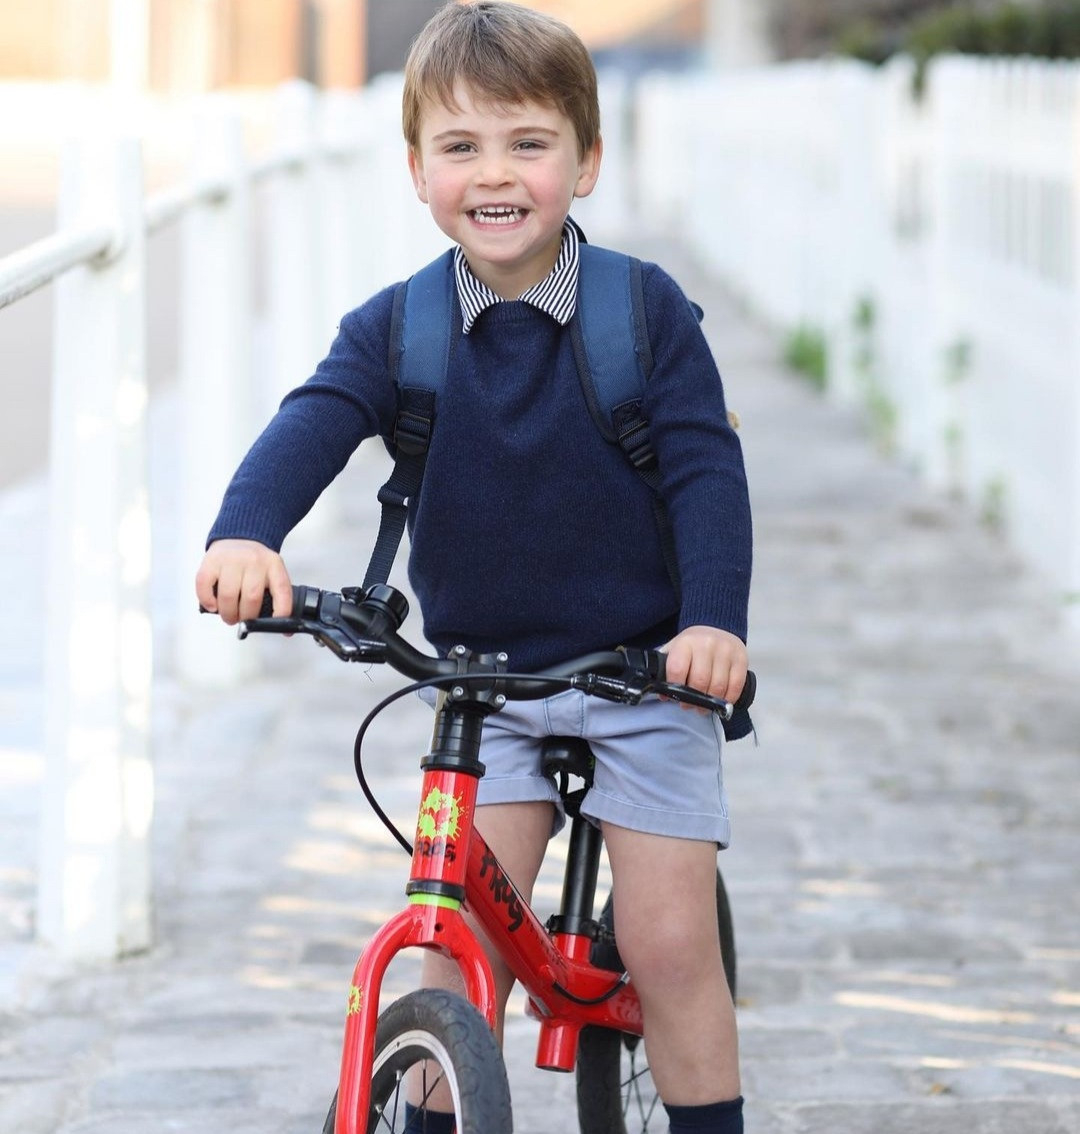 Royal family release new photo of Prince Louis taken on his first day of nursery school to mark his 3rd birthday